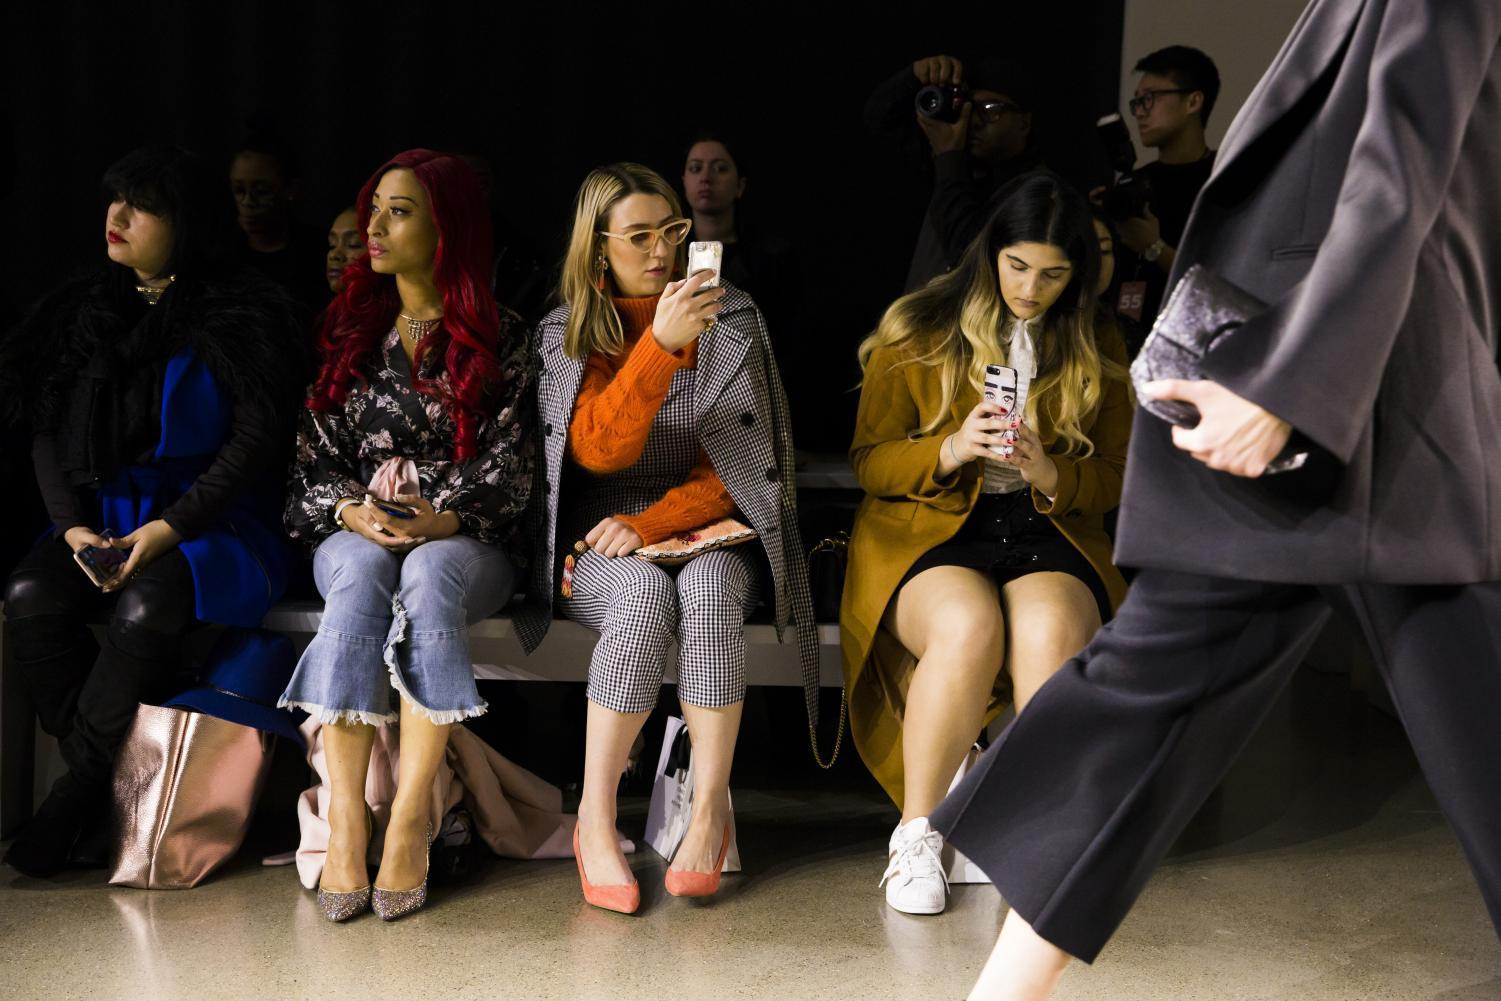 Audience members take photos and videos on their phones during the All Comes From Nothing FW18 show.